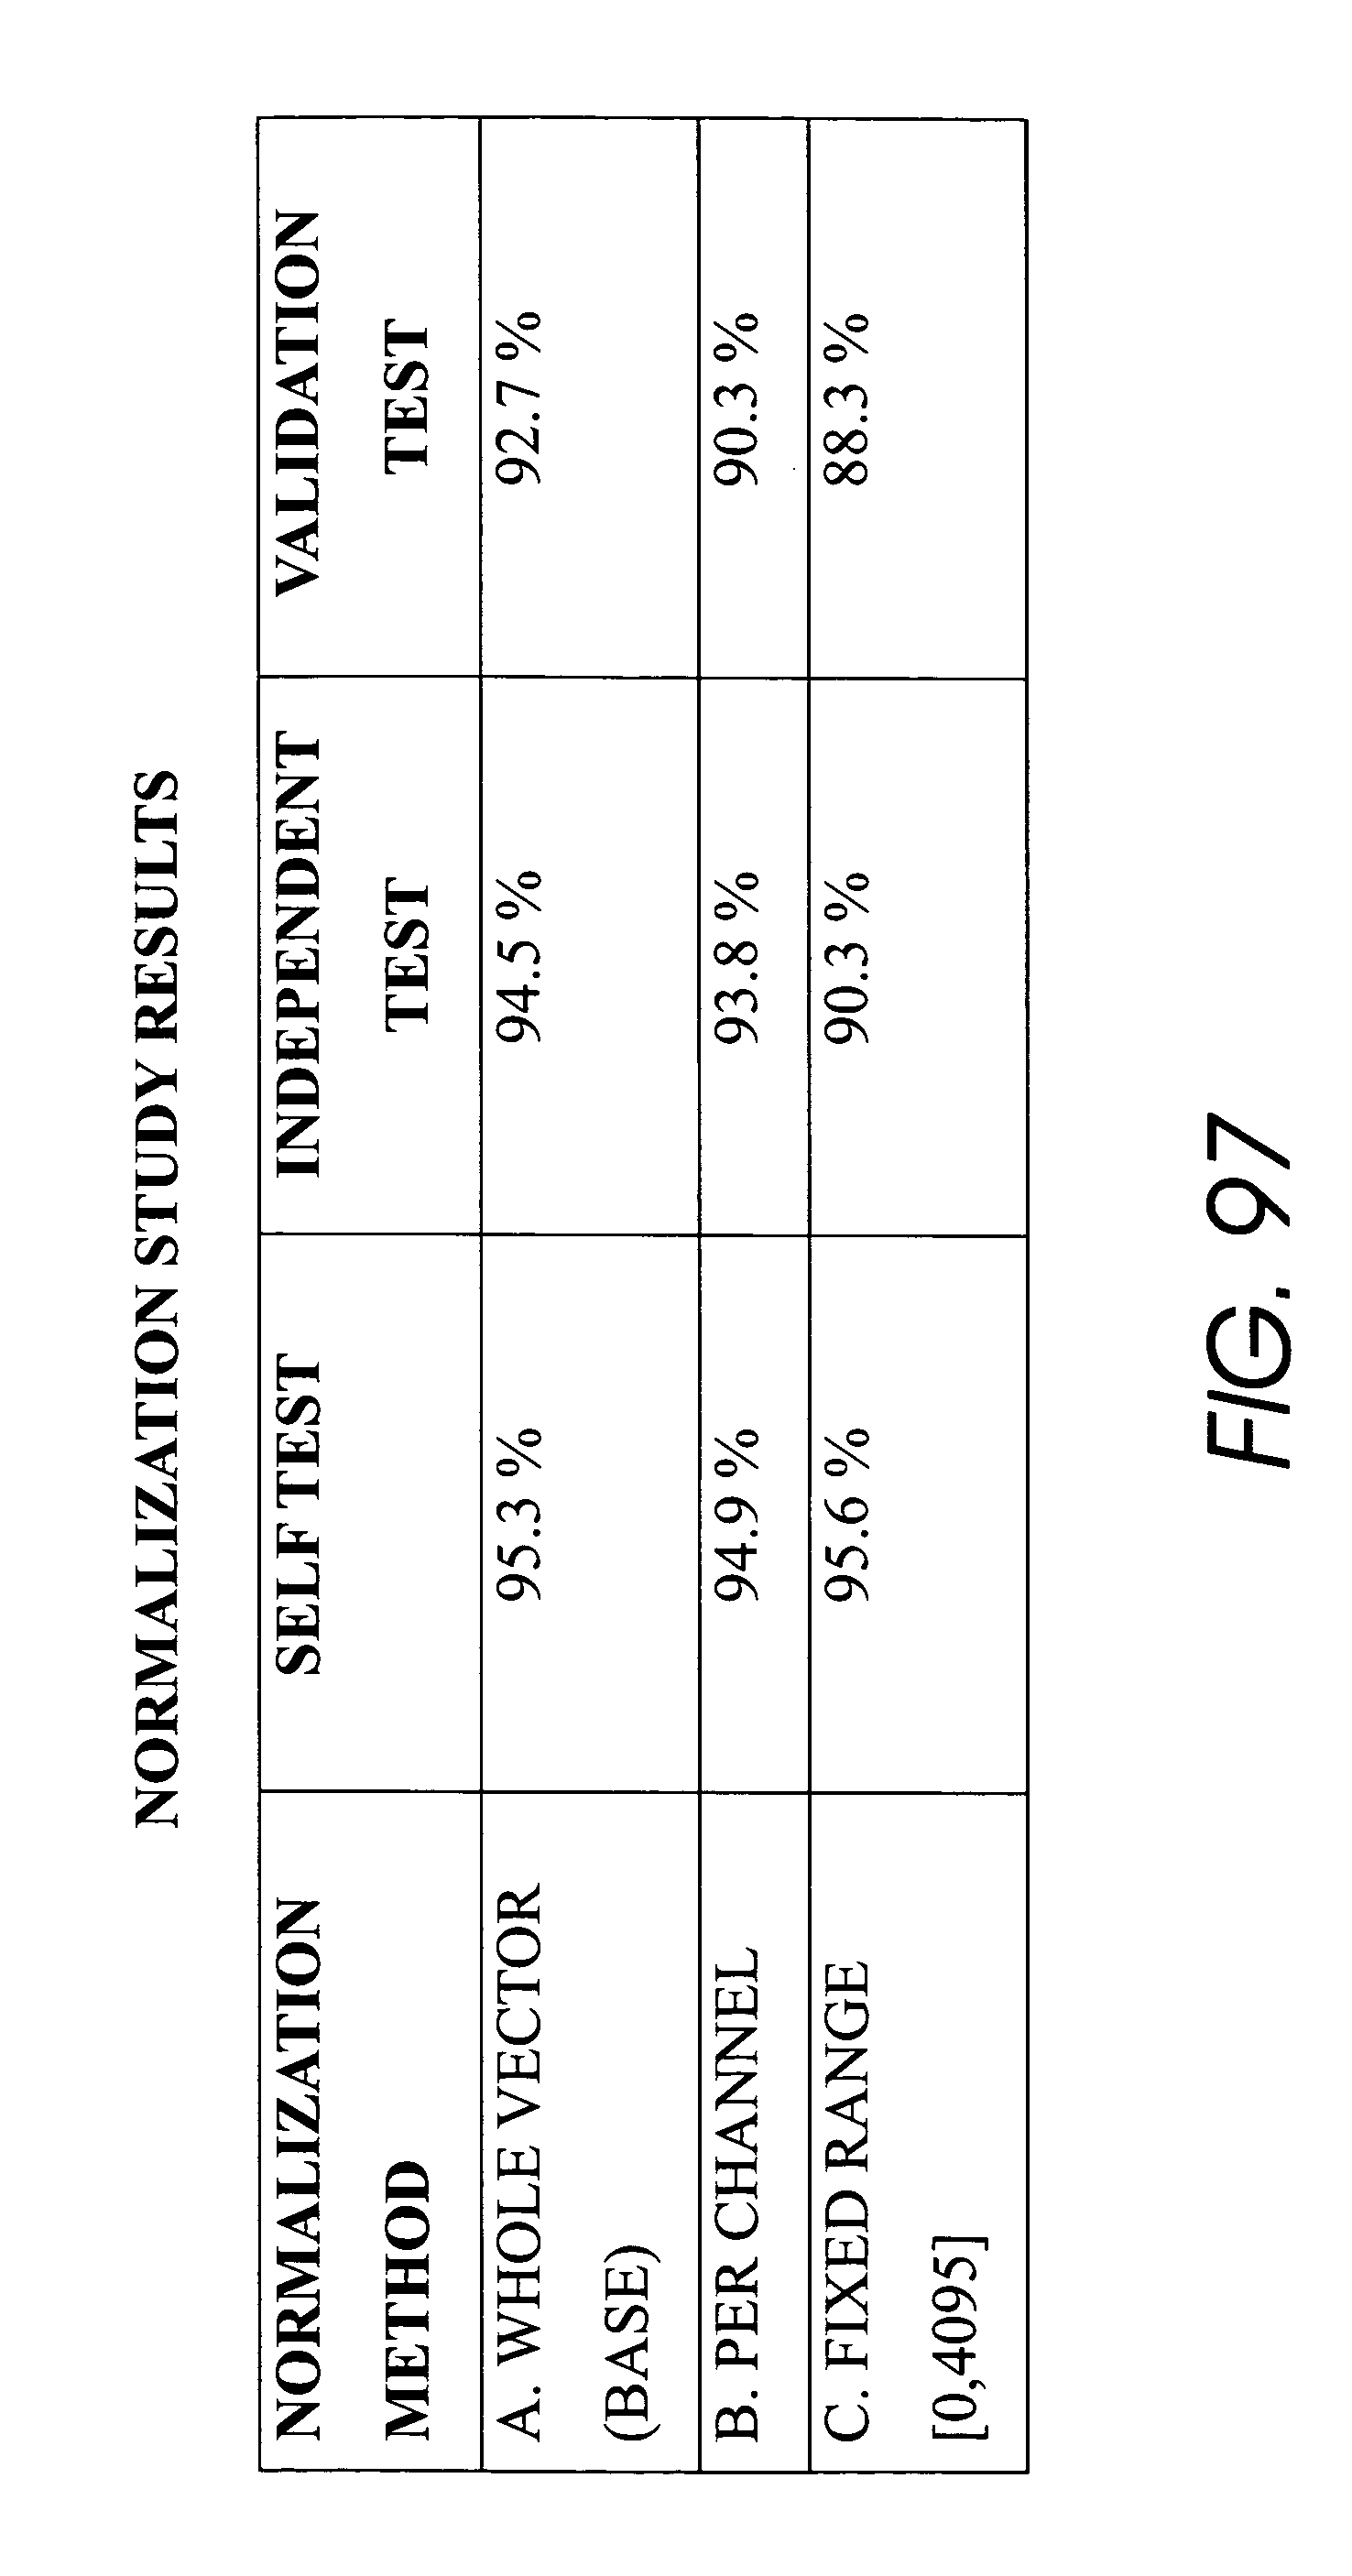 Patent Us 7164117 B2 Knob And Tube Wiring Replacement Cost Images